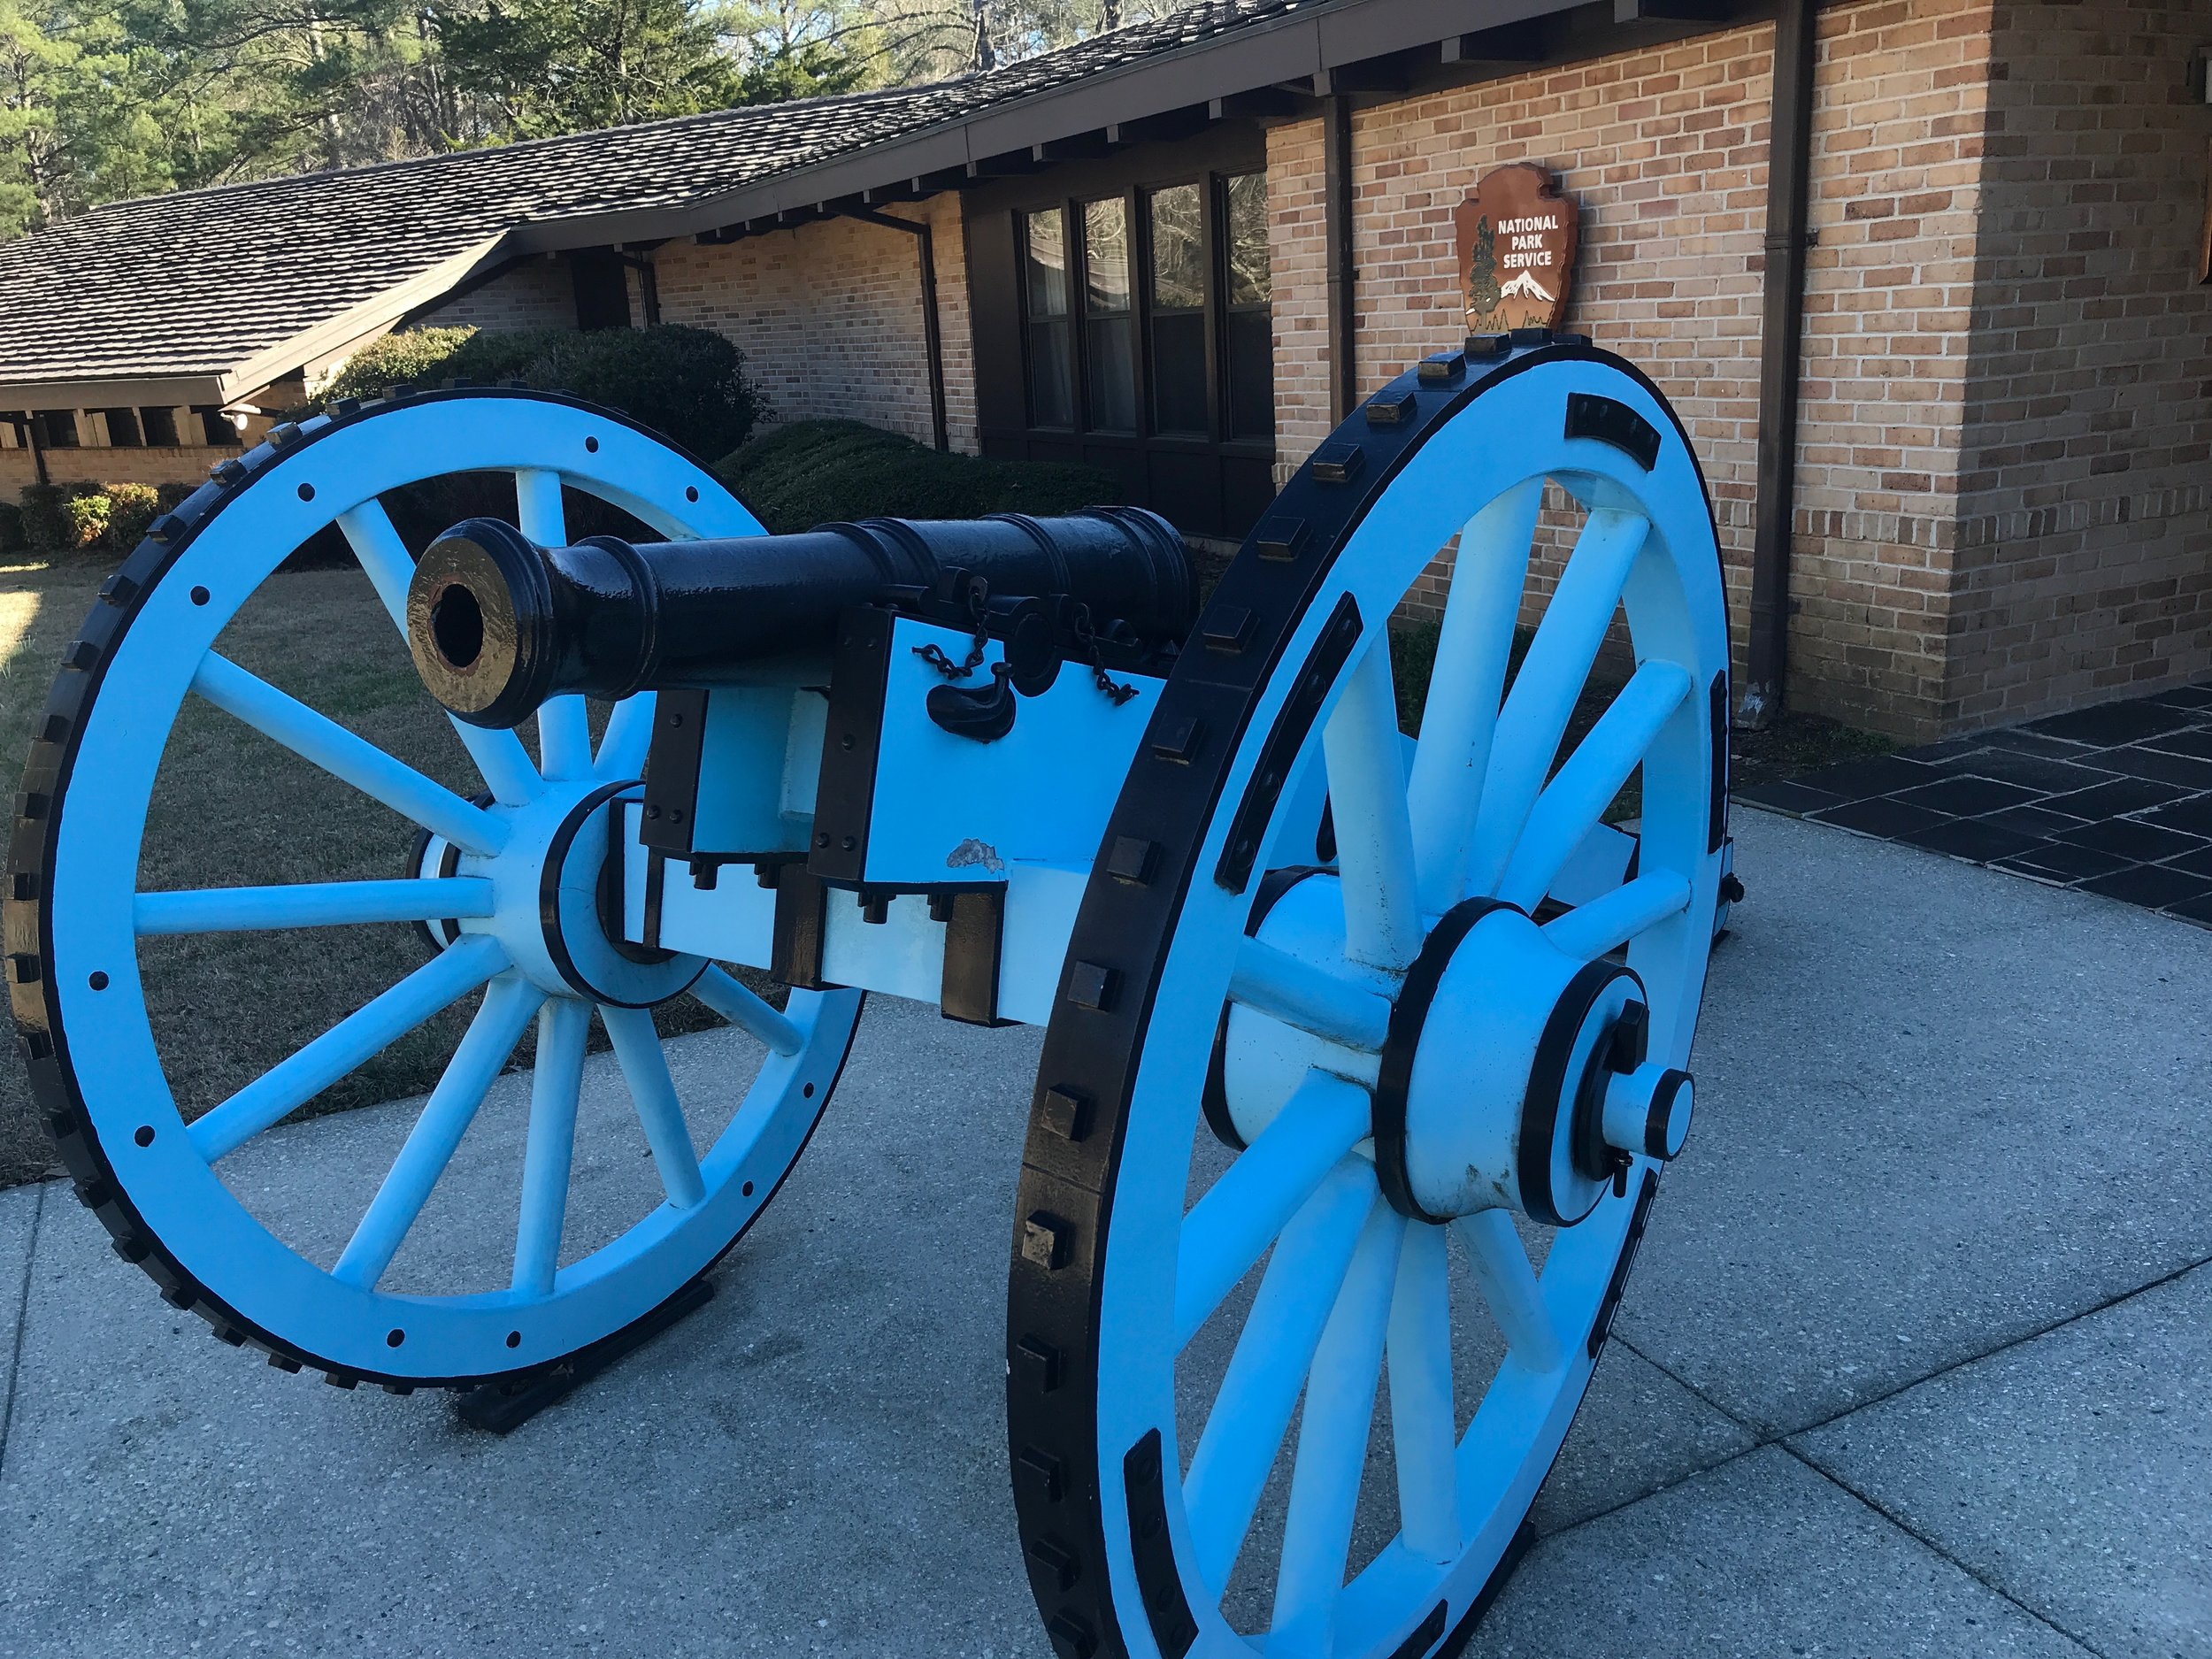 A cannon like those used by Americans is on display at the Horseshoe Bend National Military Park. Influenced by France, a sign nearby explains, cannon carriages were painted light blue between the American Revolution and the Civil War.